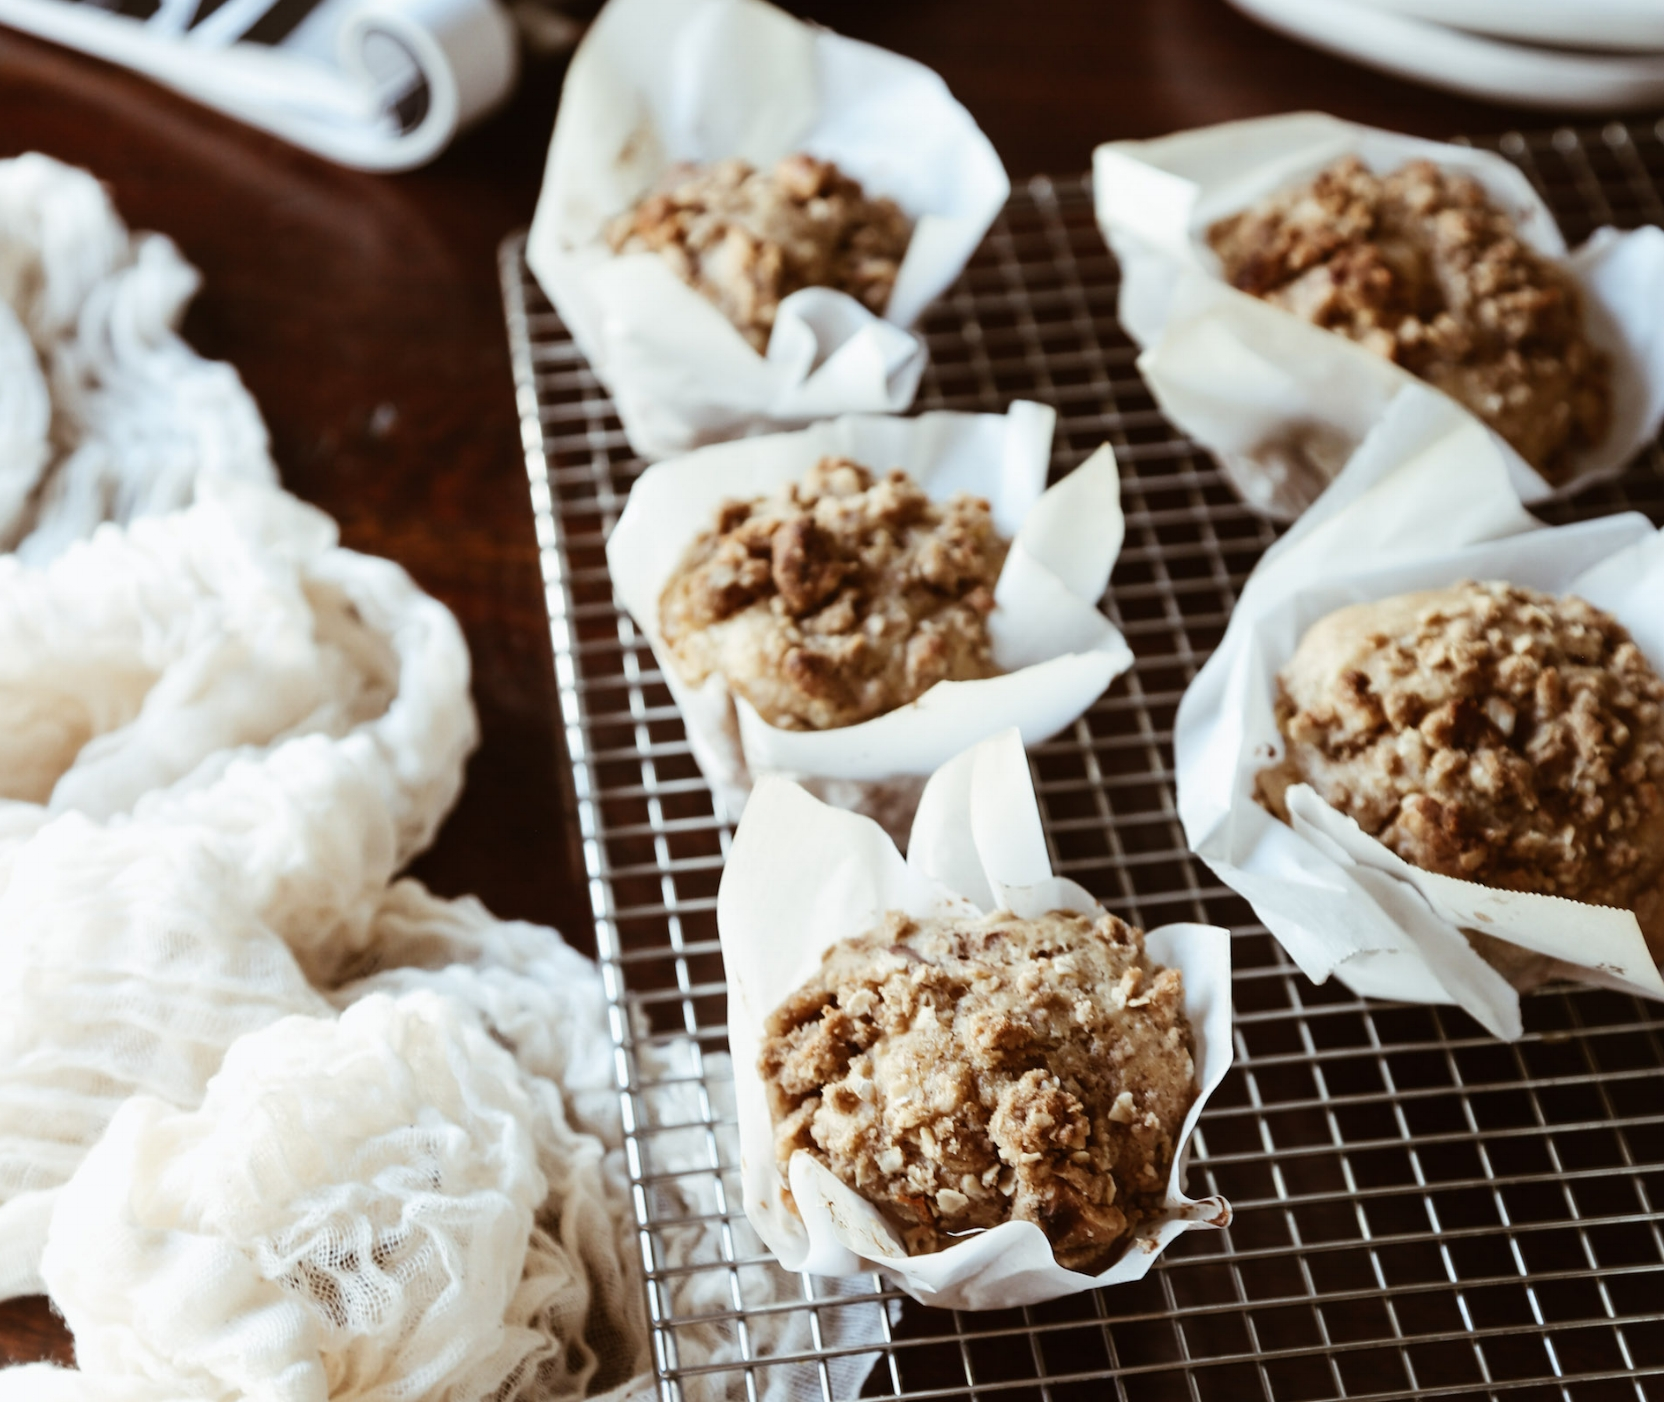 Chai Peach Muffins with Spiced Walnut Crumb Topping - yields 12